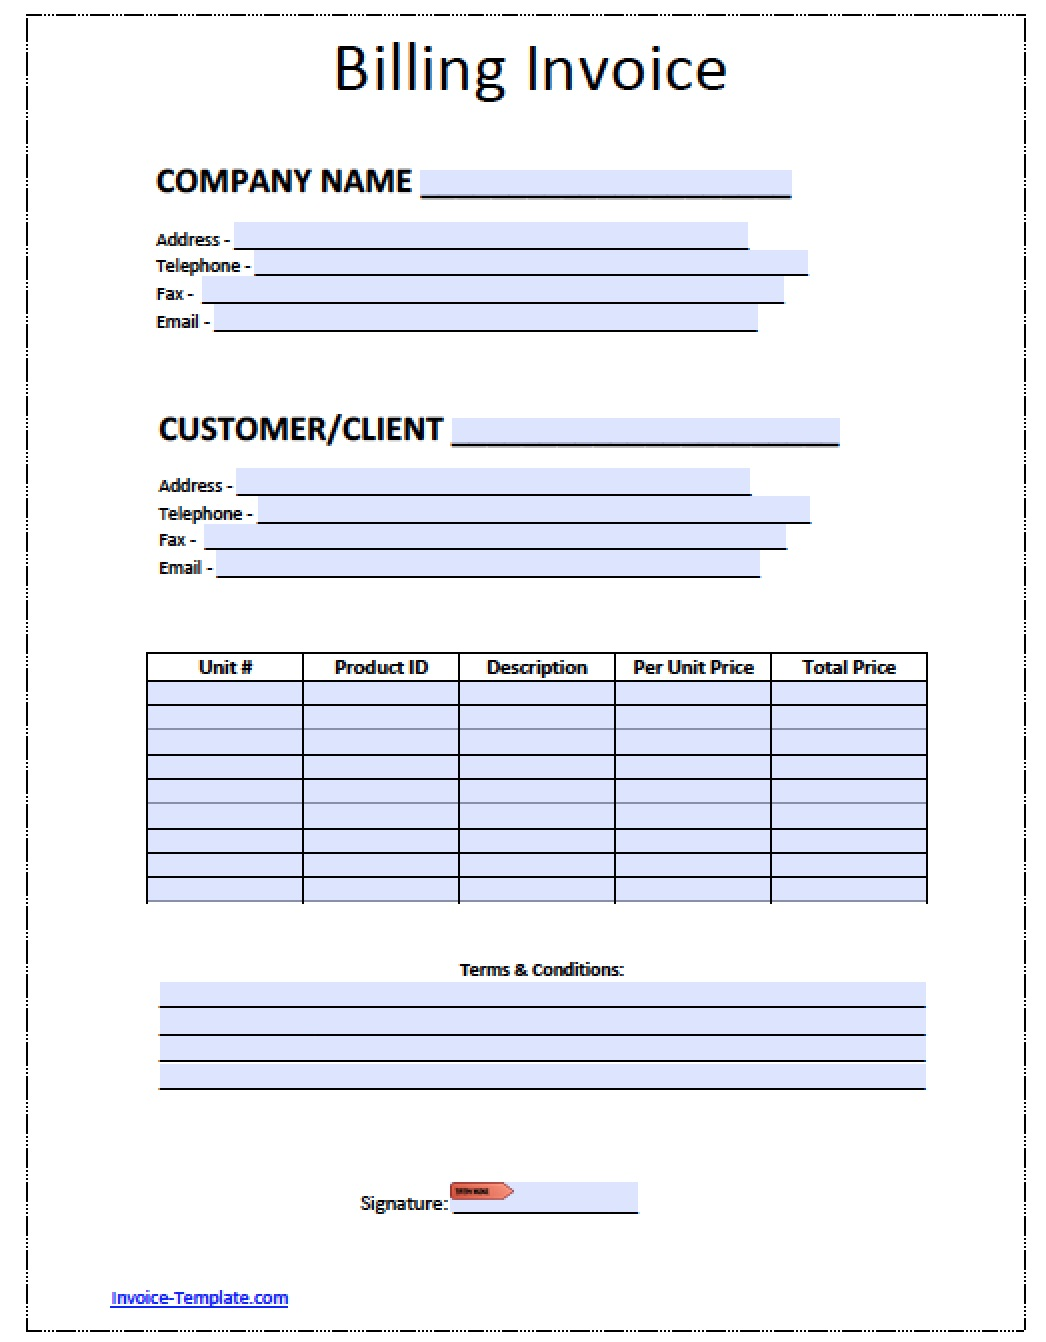 Hius  Personable Billing Invoice Invoices Faq U Cloudflare Support Billing  With Heavenly Free Billing Invoice Template  Excel  Pdf  Word Doc  Billing With Adorable Free Online Invoice Templates Also Invoice Creation In Addition Making Invoices And Invoice Formats As Well As Past Due Invoice Letter Template Additionally Invoice Dictionary From Happytomco With Hius  Heavenly Billing Invoice Invoices Faq U Cloudflare Support Billing  With Adorable Free Billing Invoice Template  Excel  Pdf  Word Doc  Billing And Personable Free Online Invoice Templates Also Invoice Creation In Addition Making Invoices From Happytomco